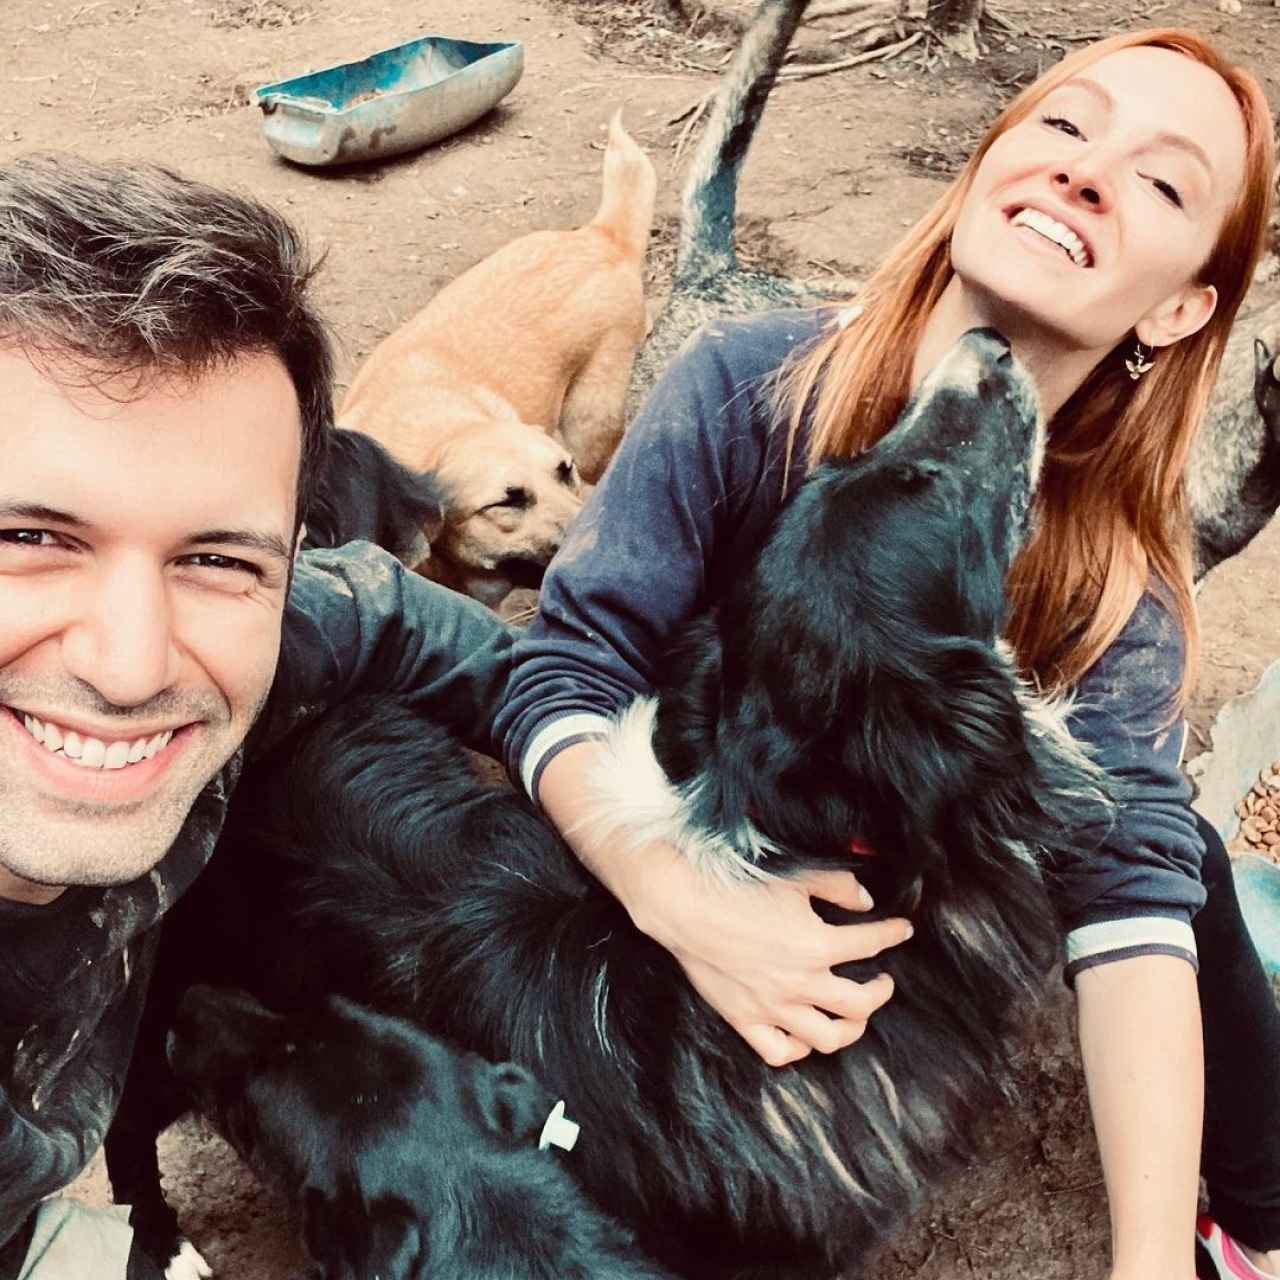 Both actors from 'Love is in the air' in a picture with the shelter dogs they visited last fall.